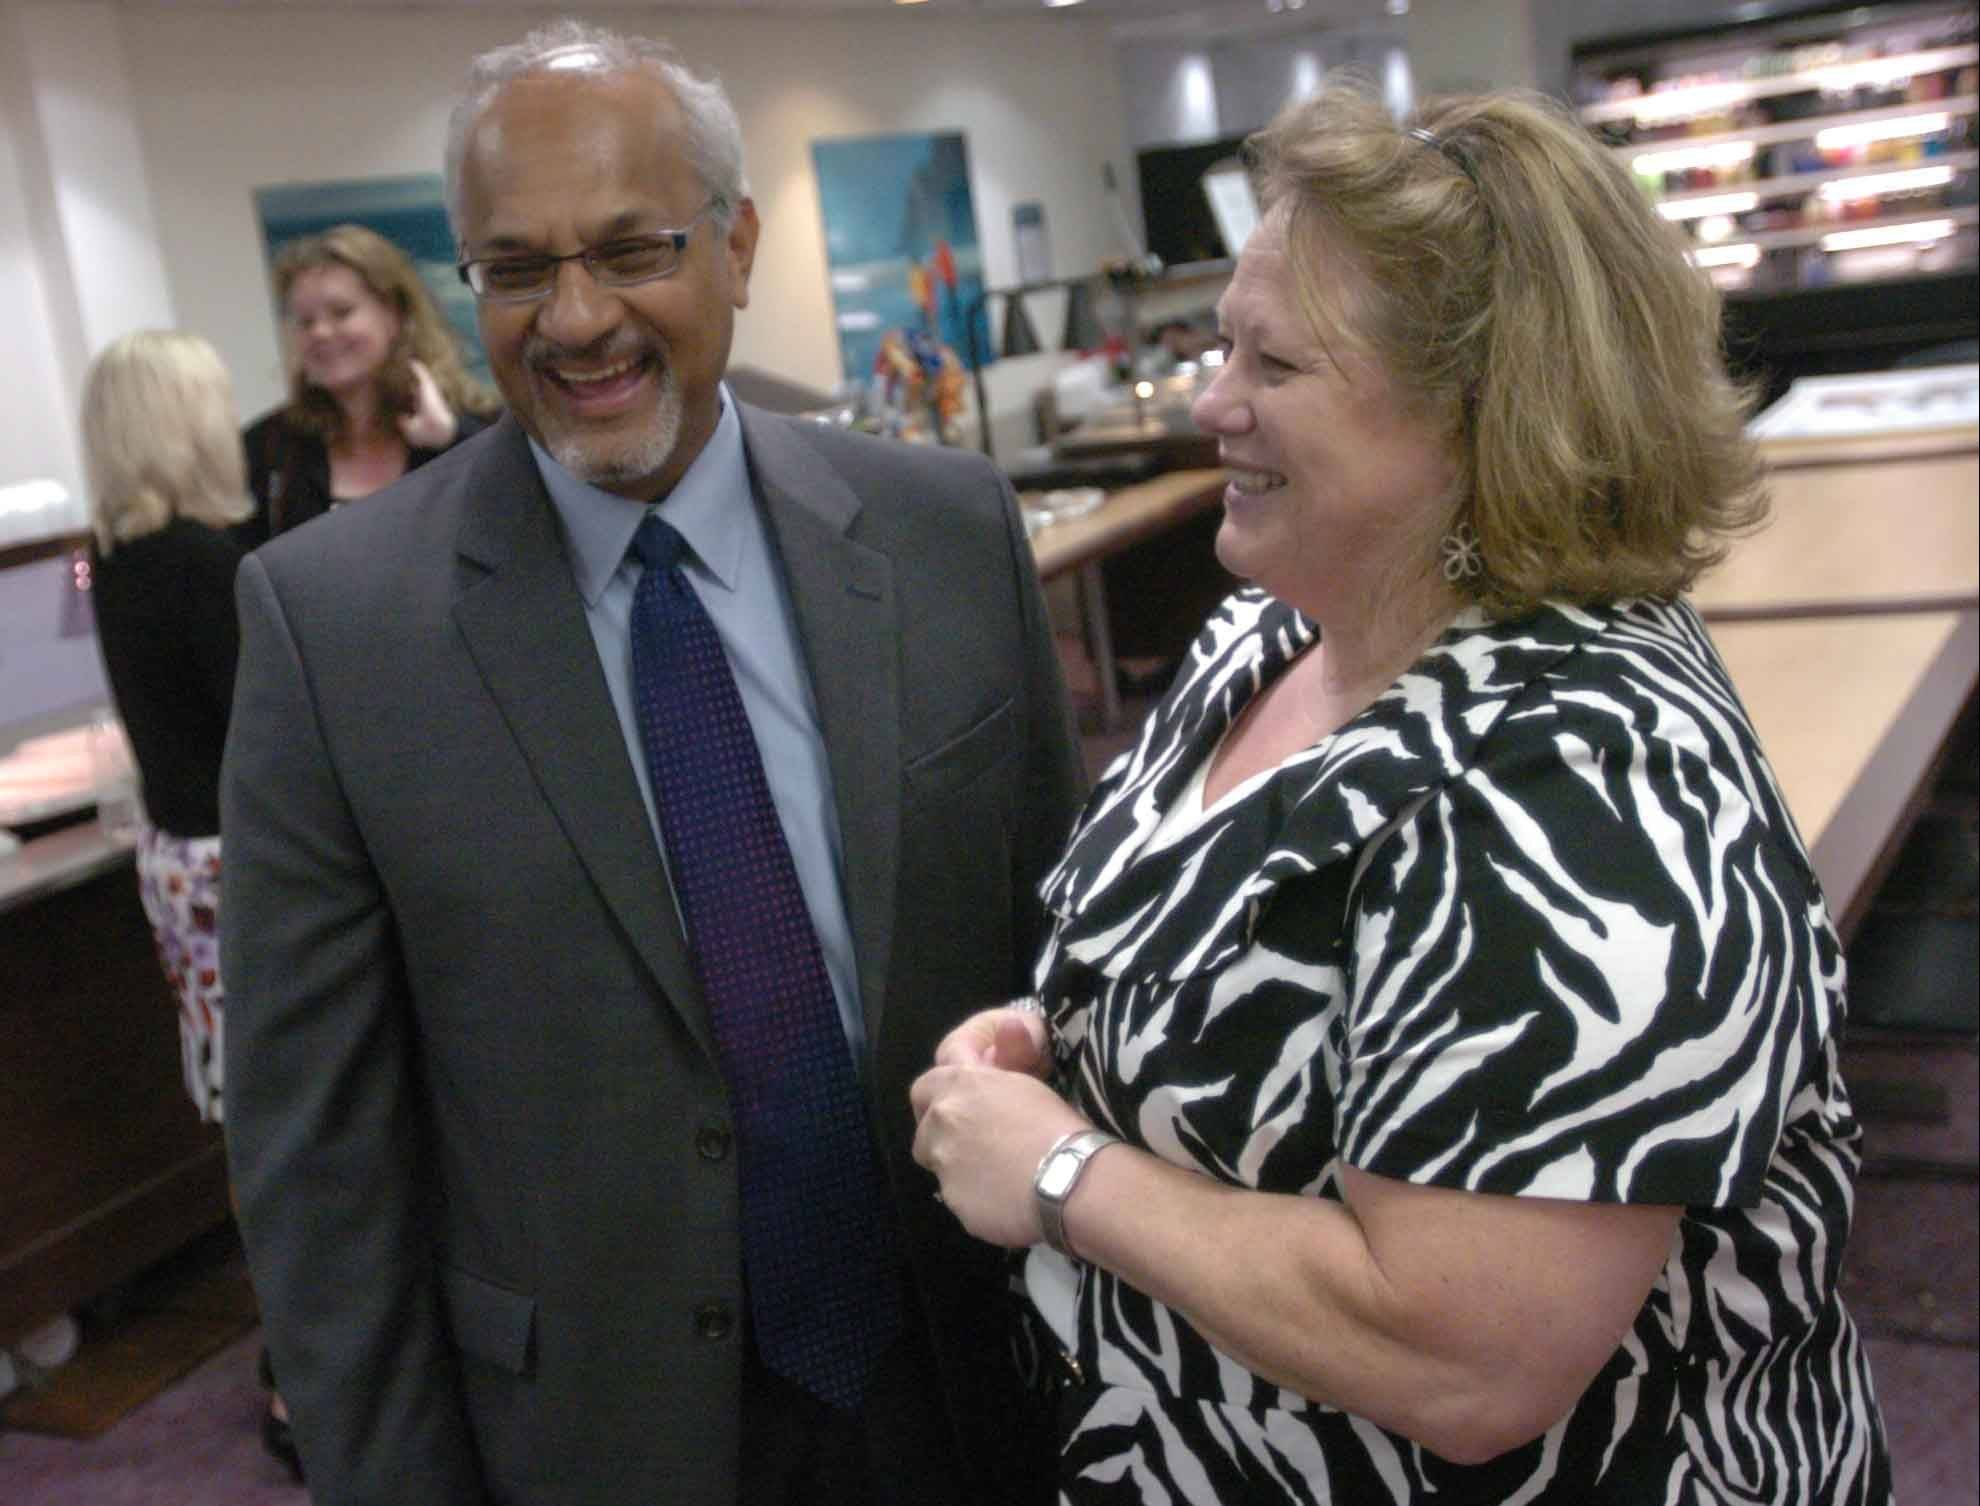 Adventist GlenOaks Hospital CEO Brinsley Lewis is leaving after 12 years as head of the Glendale Heights hospital. He shares a laugh with Tina Johnson, the hospital's community relations manager, during a farewell celebration in his honor on Wednesday.